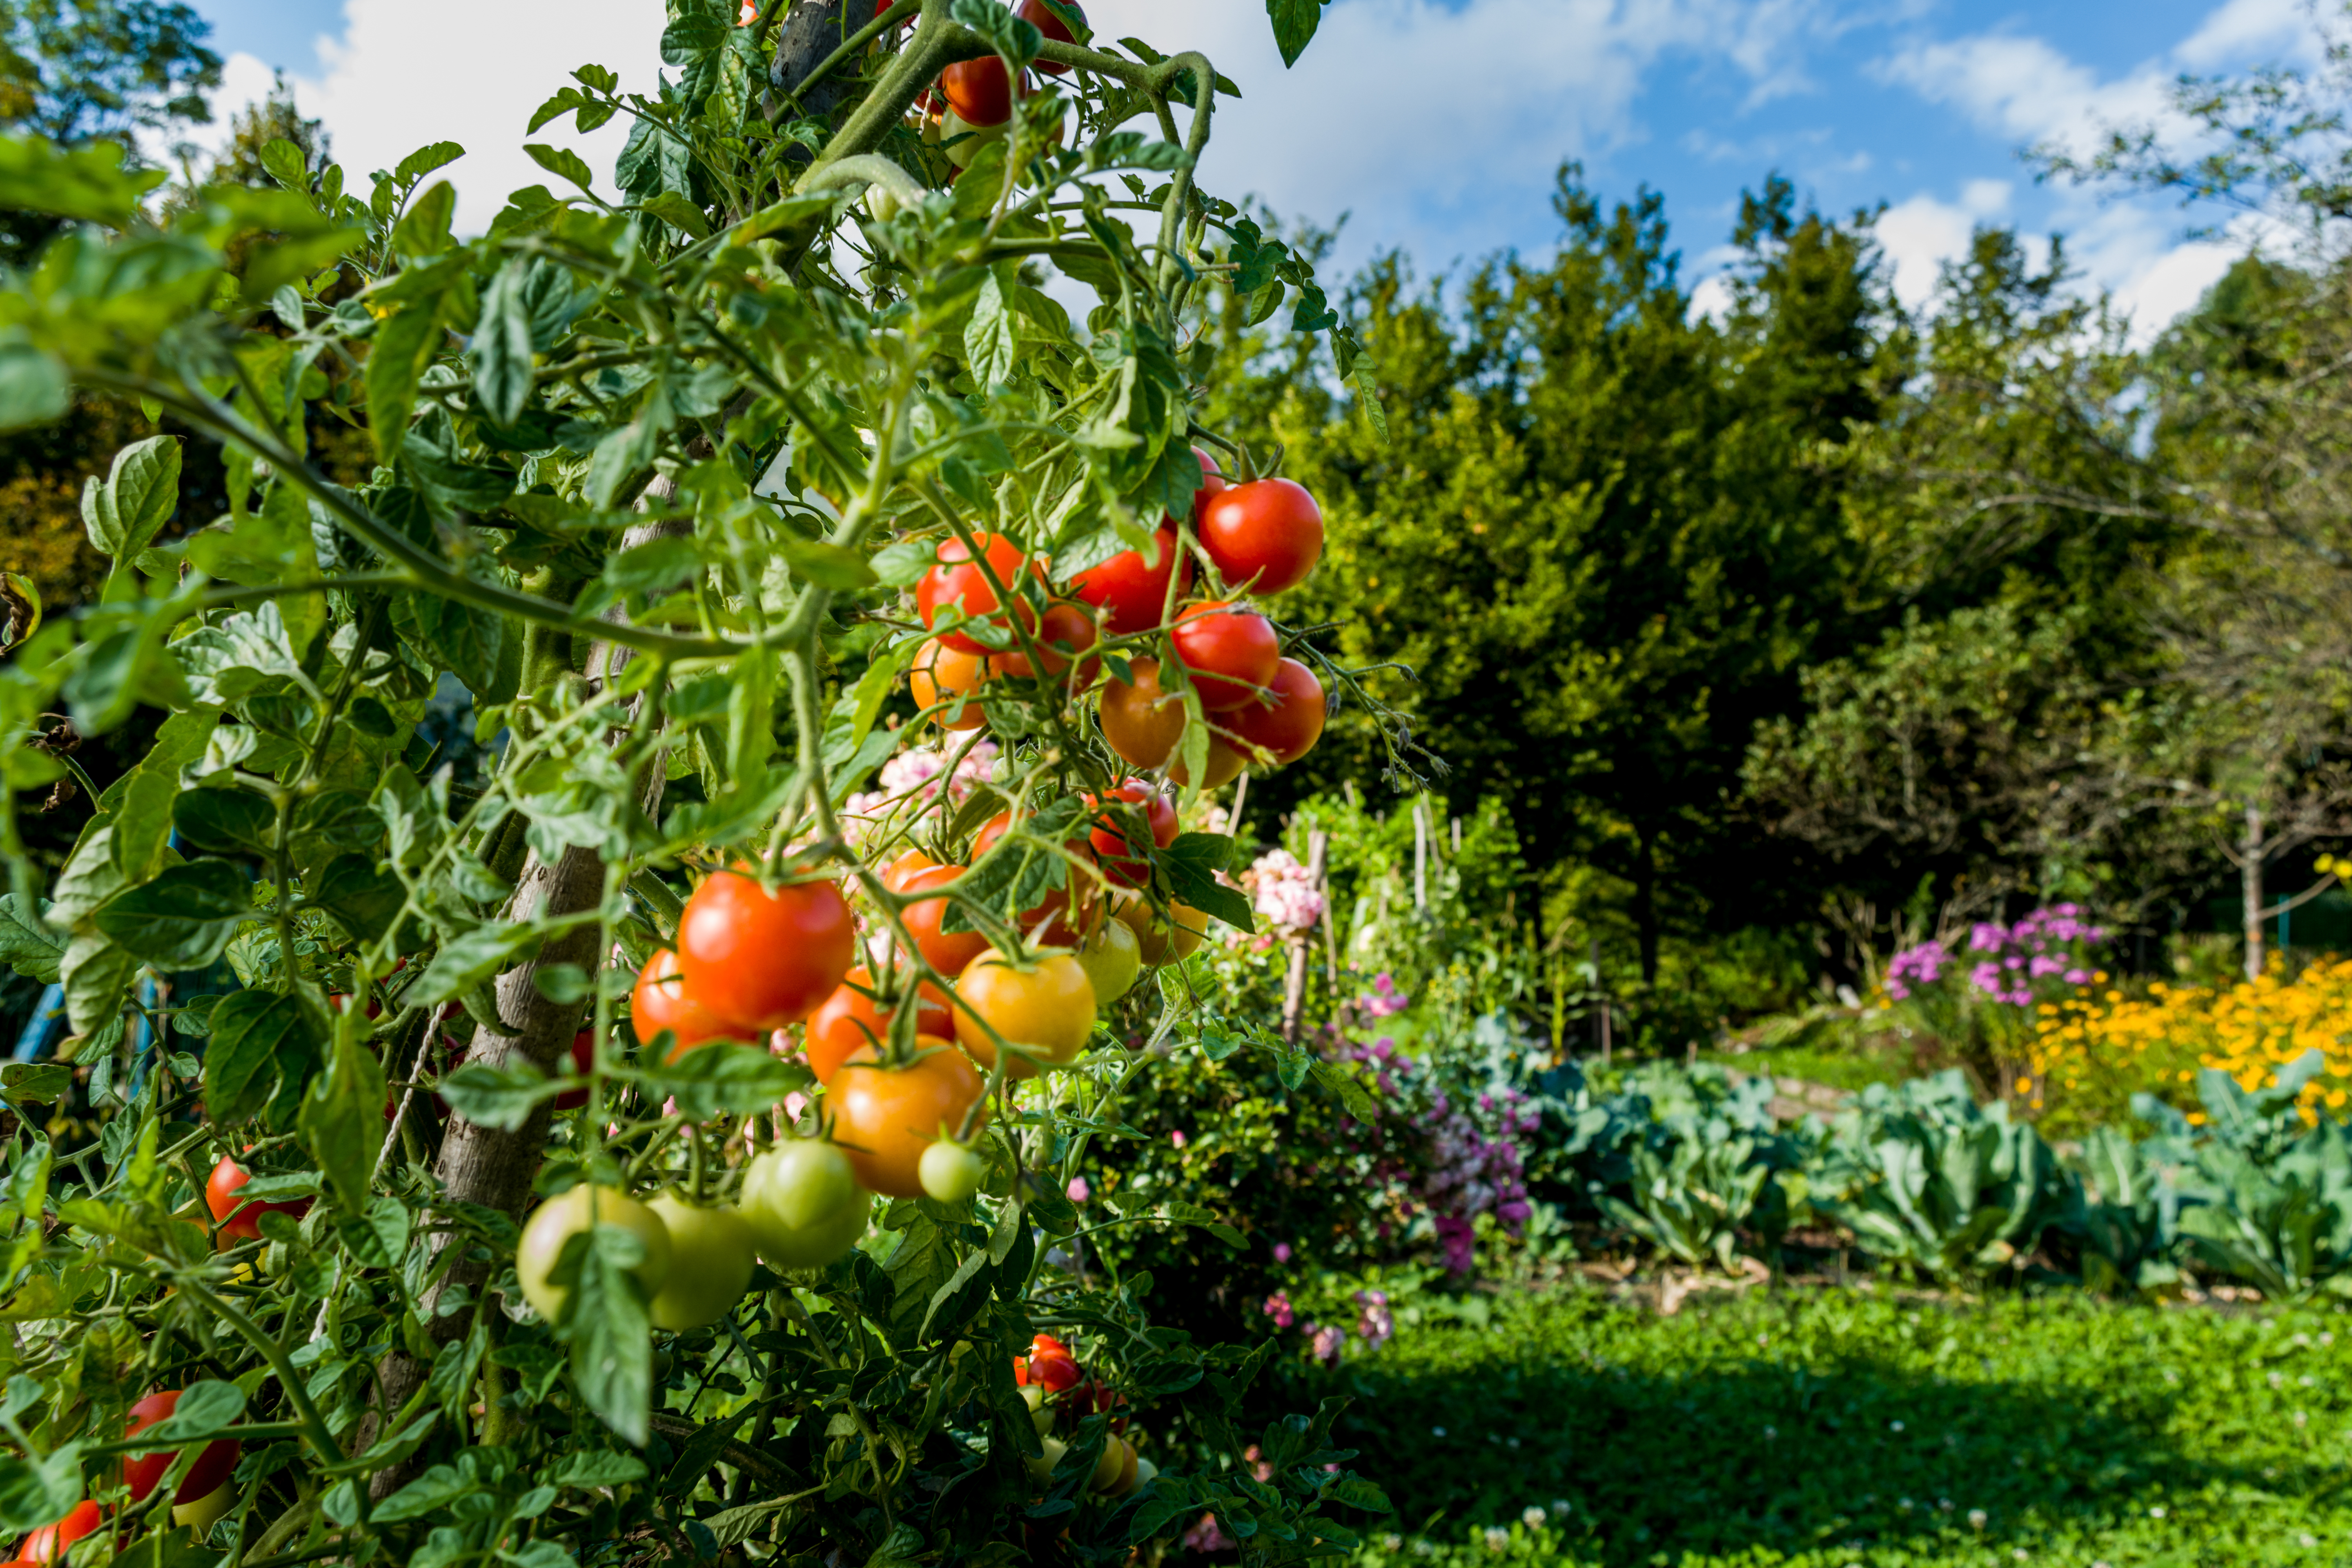 Remedies for Leaf Curl in Tomato Plants | Home Guides | SF Gate